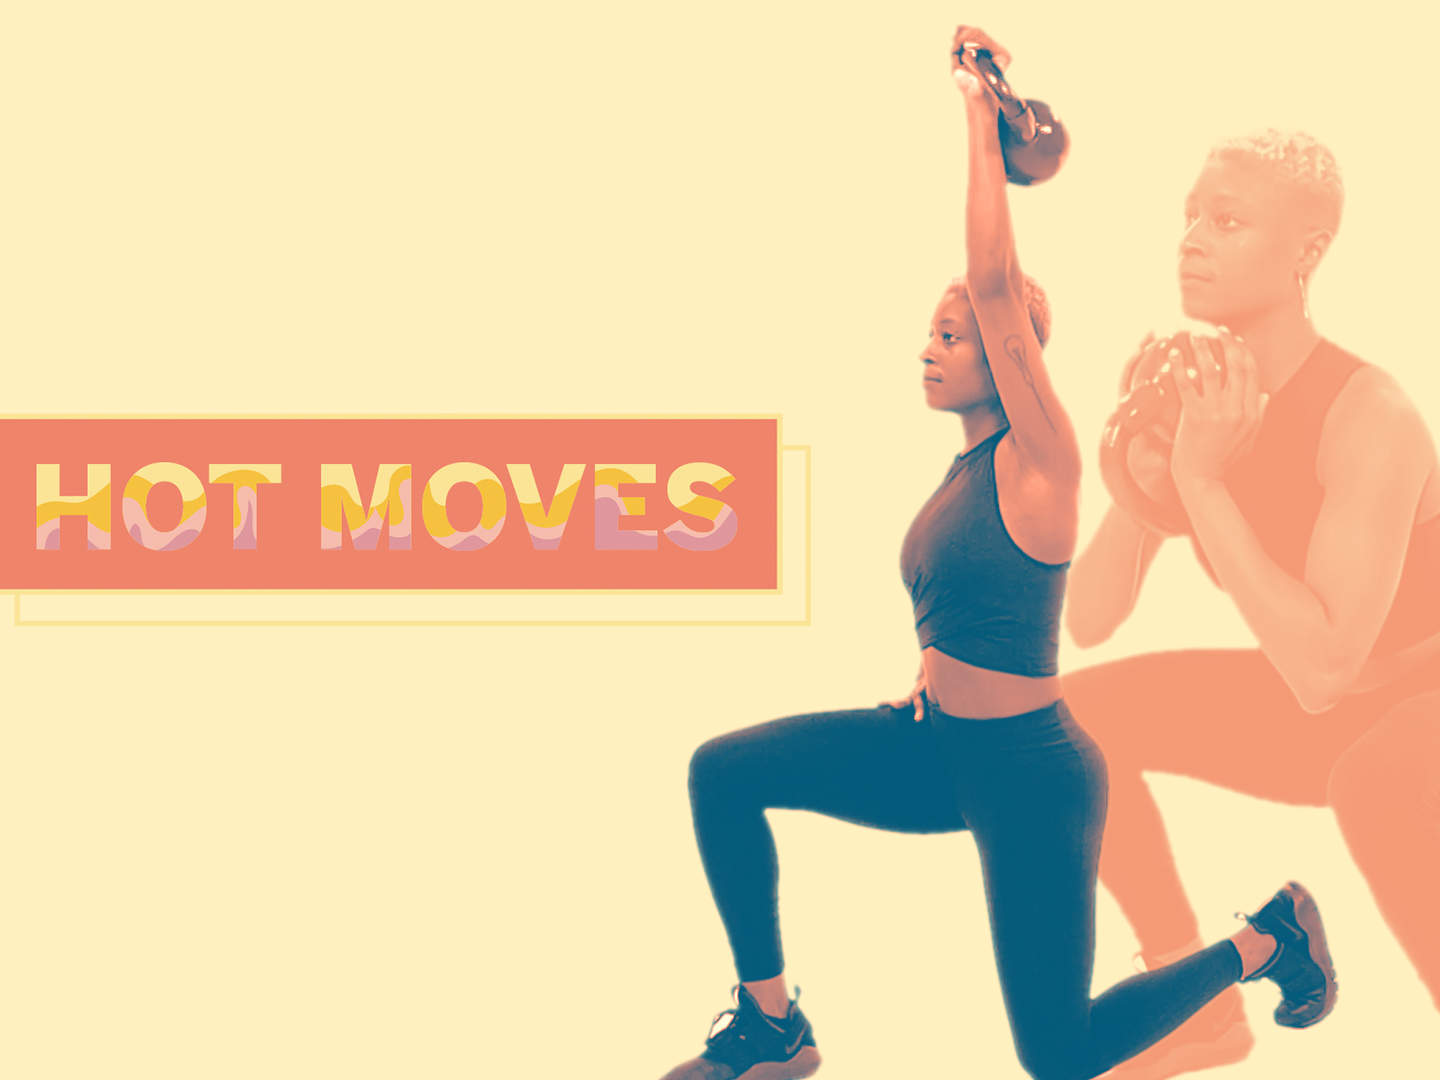 kettlebell-hot-moves